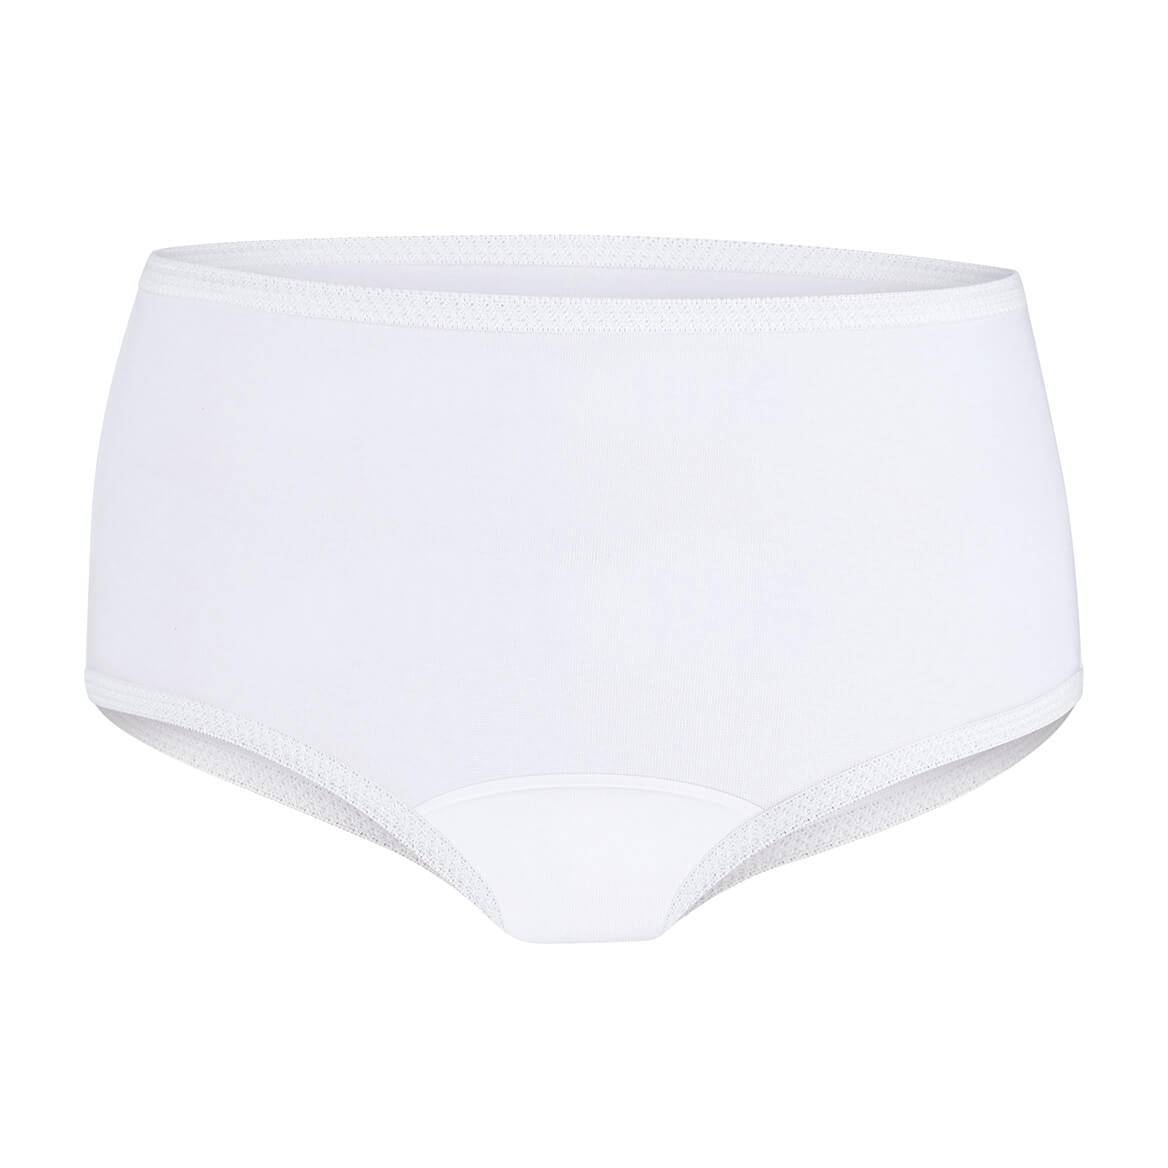 Incontinence Underpants Ladies Regular Absorbency S/3-370070